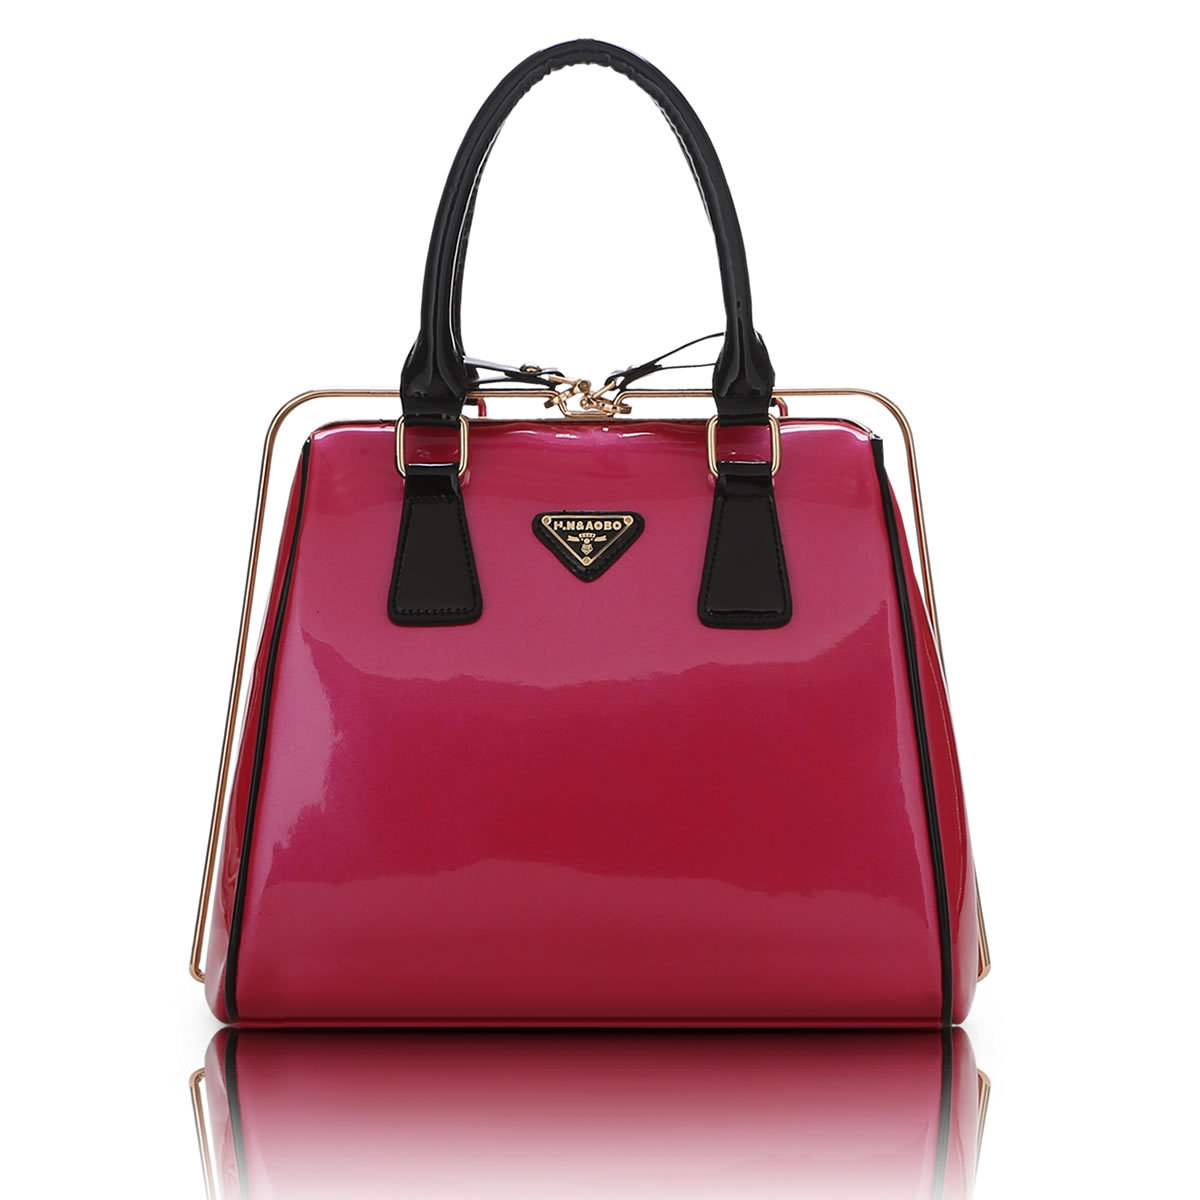 ФОТО Time-limited Beauty Package 2016 Amber Leather Version Europe Double Locking Portable Shoulder Diagonal Bags One Generation 575